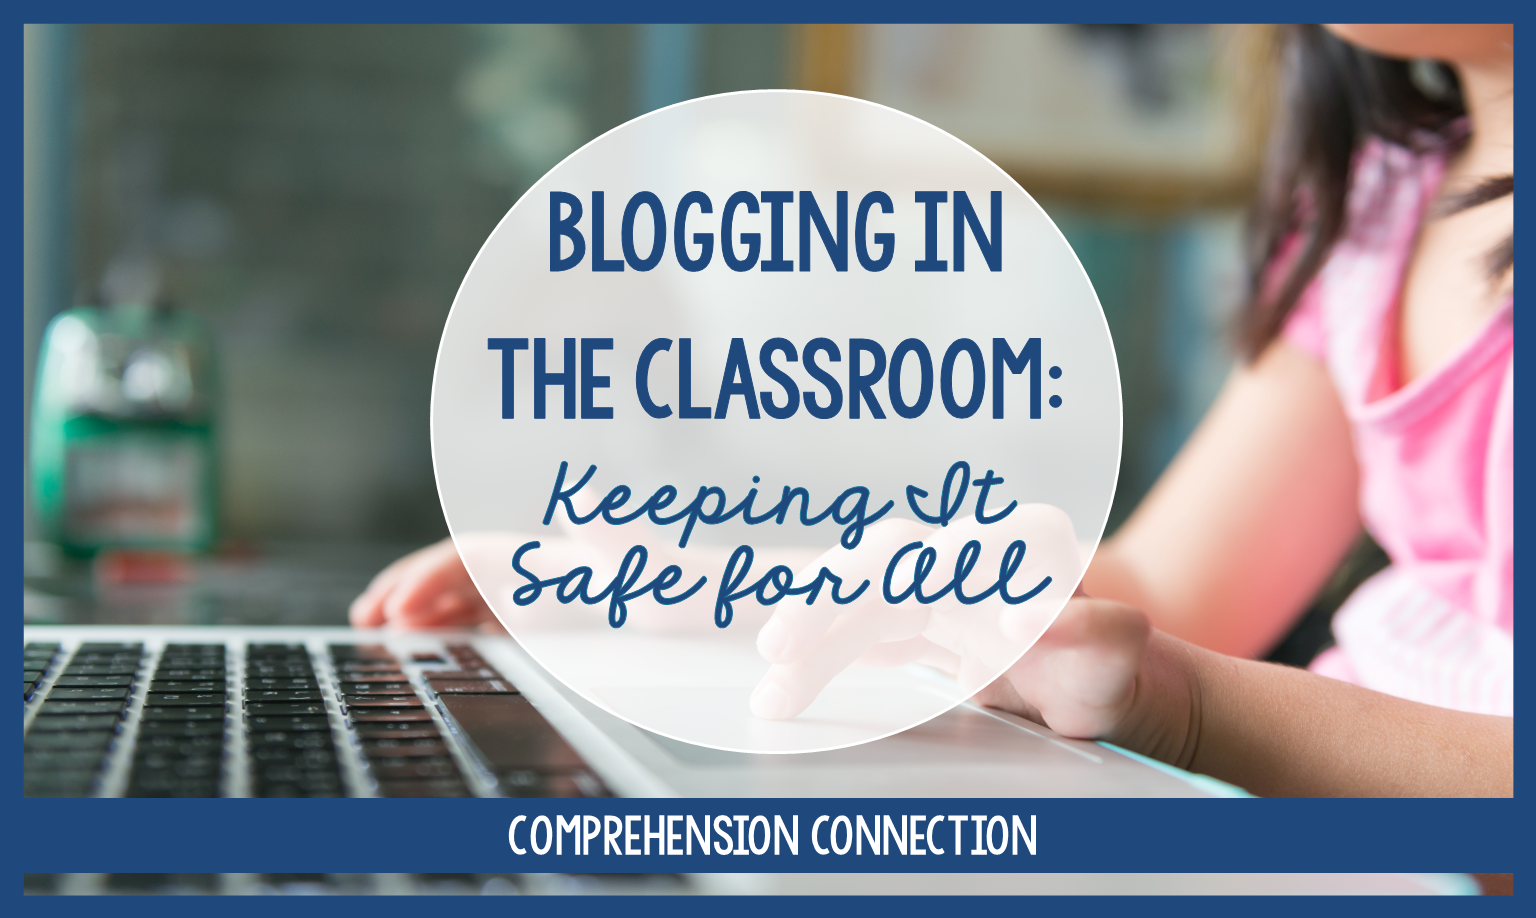 Blogging in the classroom can be rewarding as long as students use the platform safely. In this post, safety guidelines are discussed as well as how to secure your sites and monitor student work. #internetsafety #bloggingintheclassroom #comprehensionconnection #internetcitizenship #bloggingbenefits